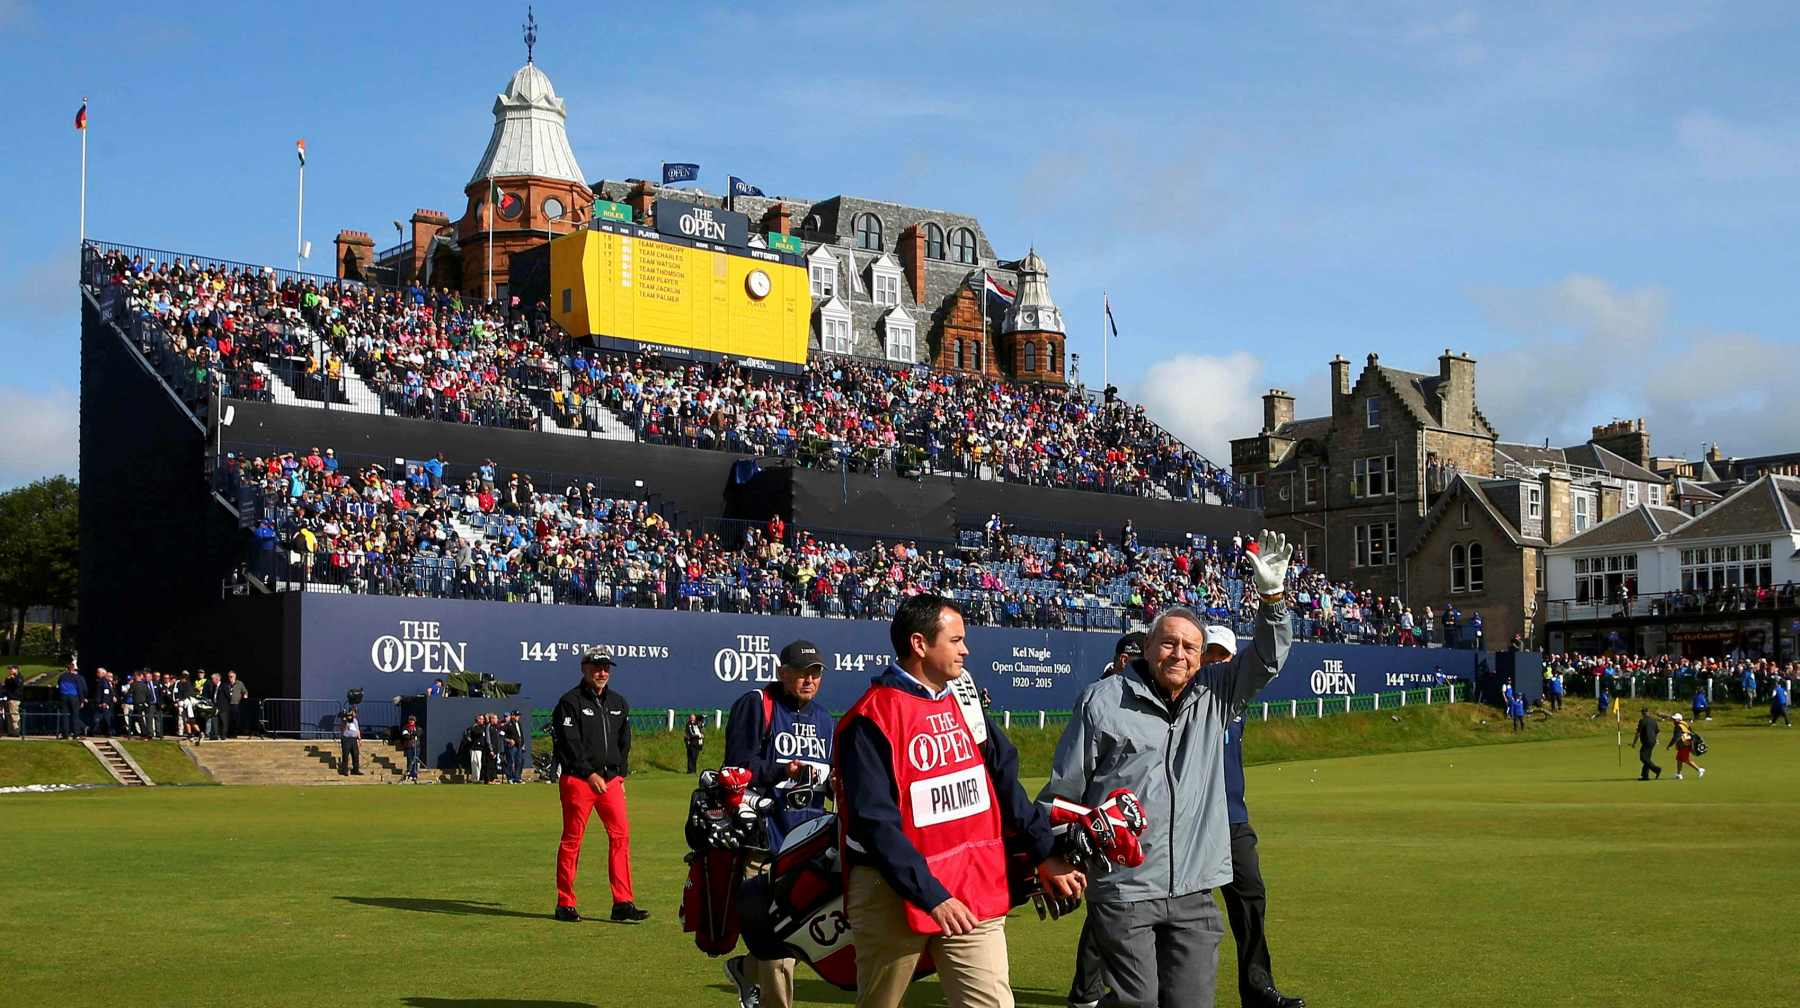 The Open Championship 2018 A Life Time Golf Tour (6 Days 5 Nights 4 Golf Rounds)